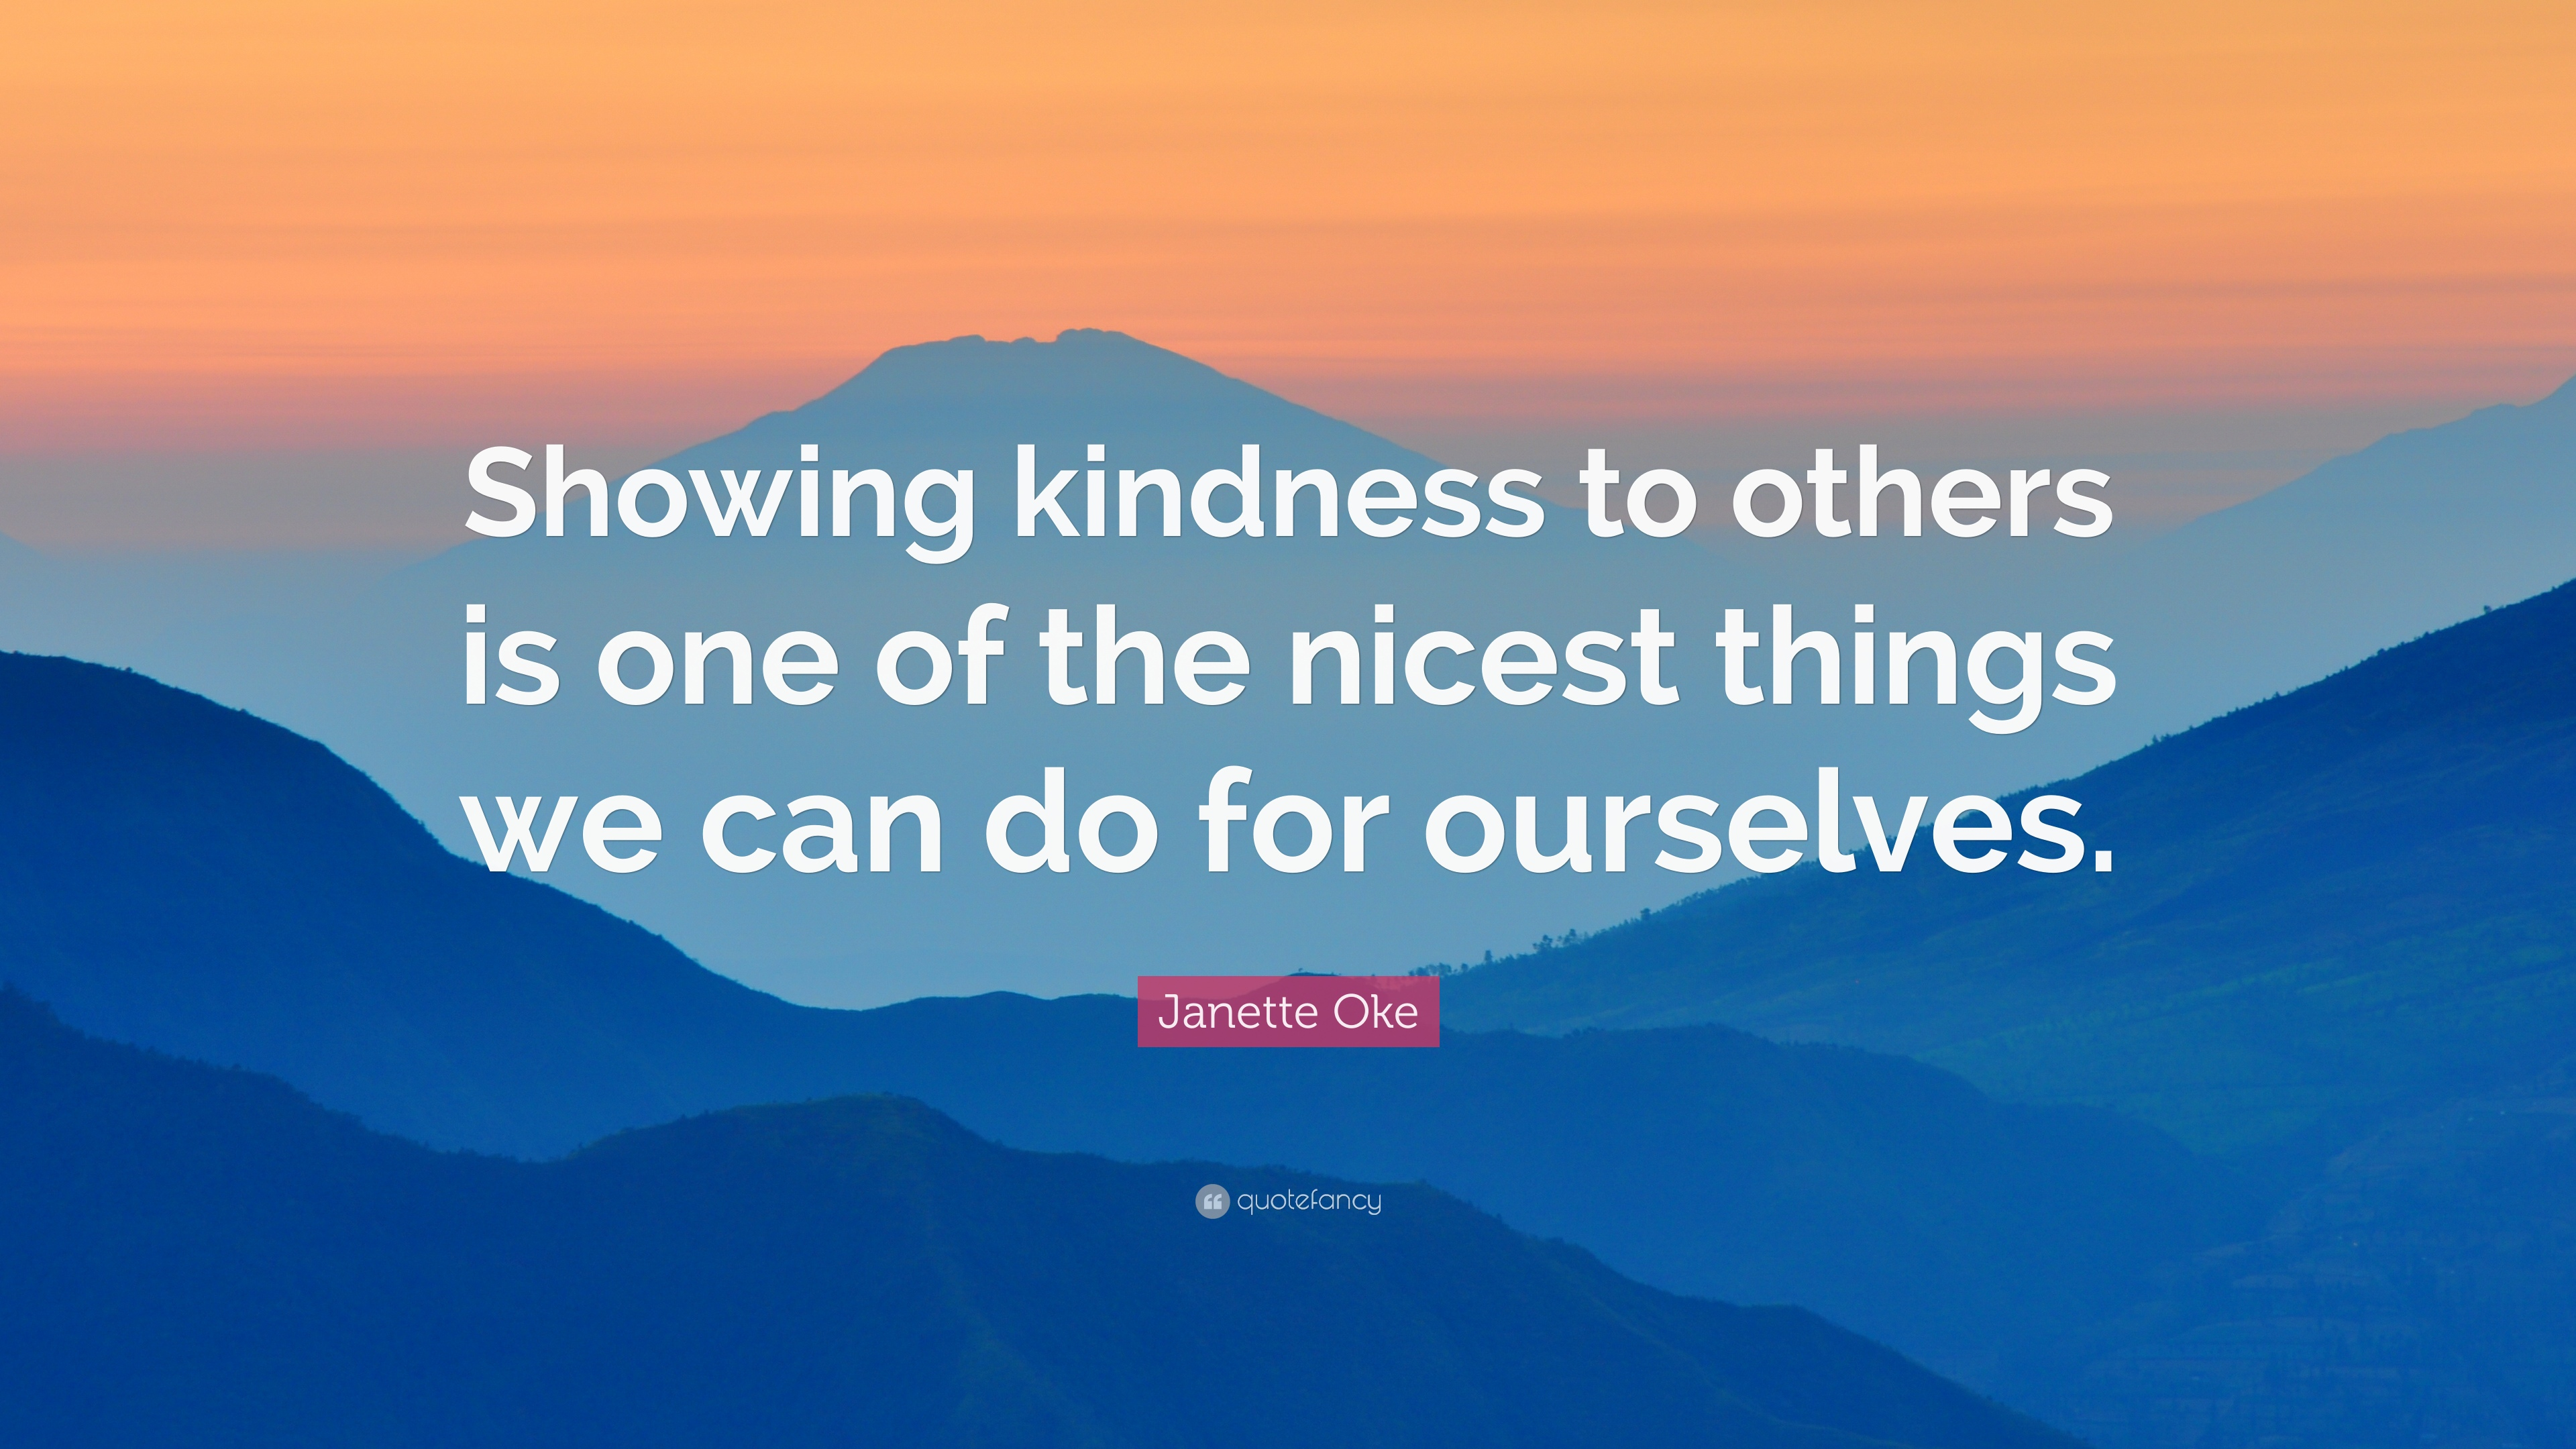 The Kindnesses We Can Do for Ourselves